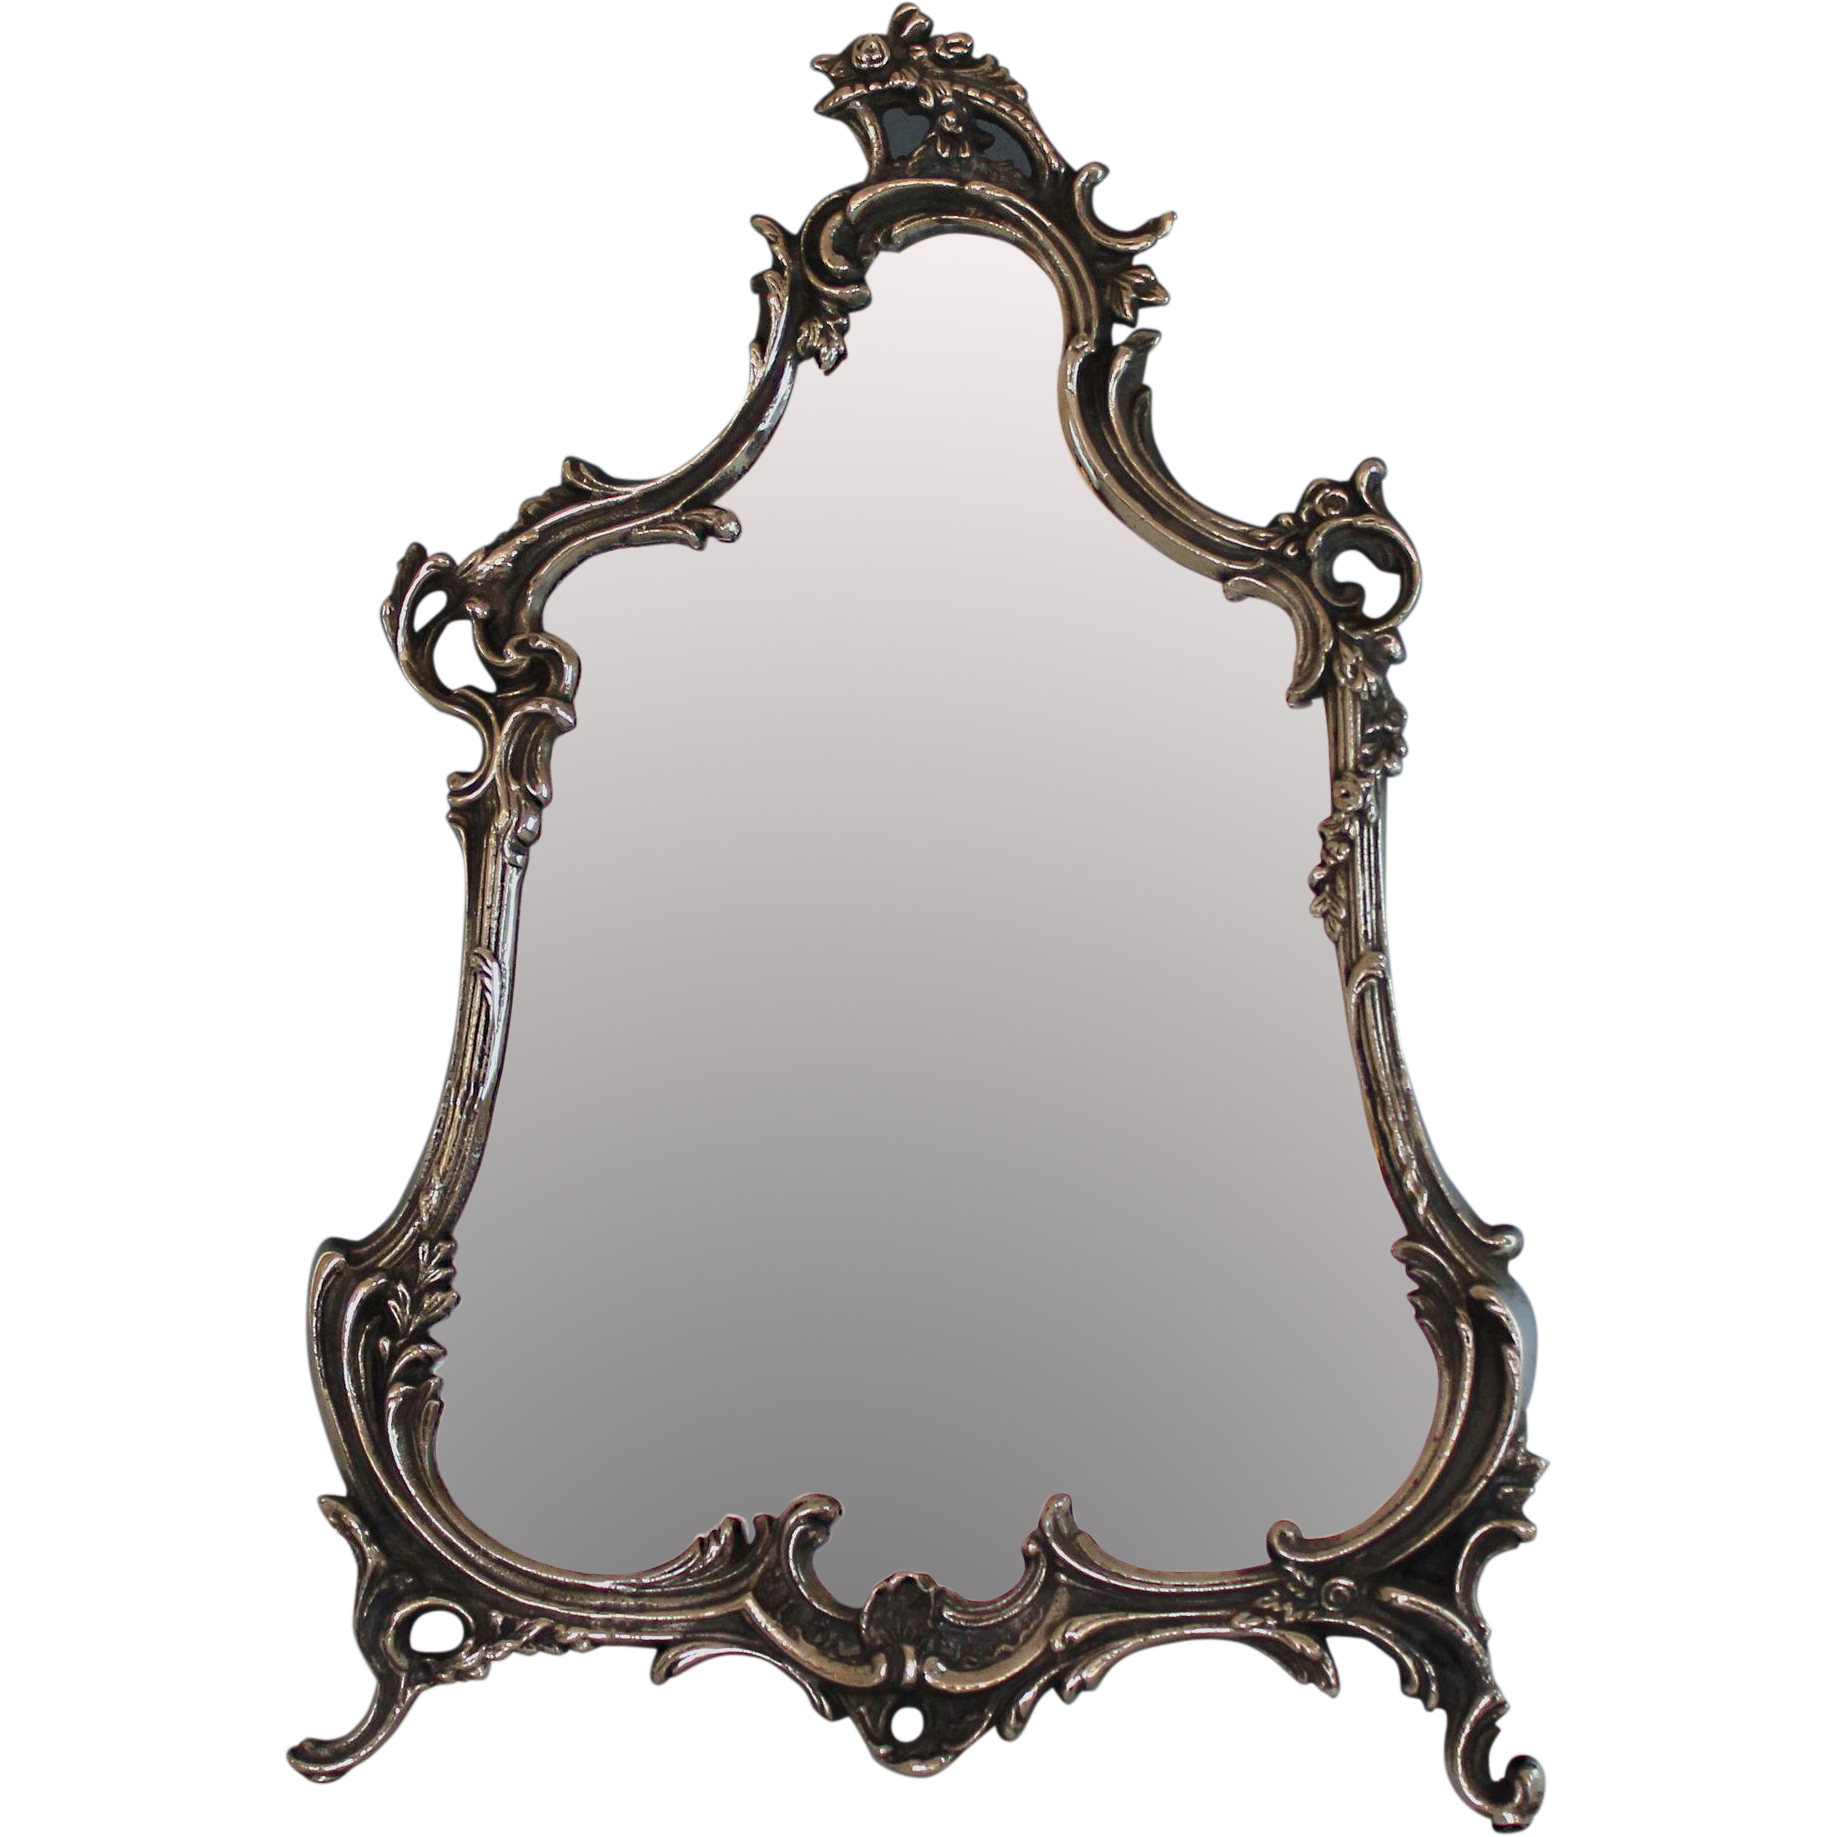 Antique Ornate Silver Plate Rococo Style Vanity Mirror